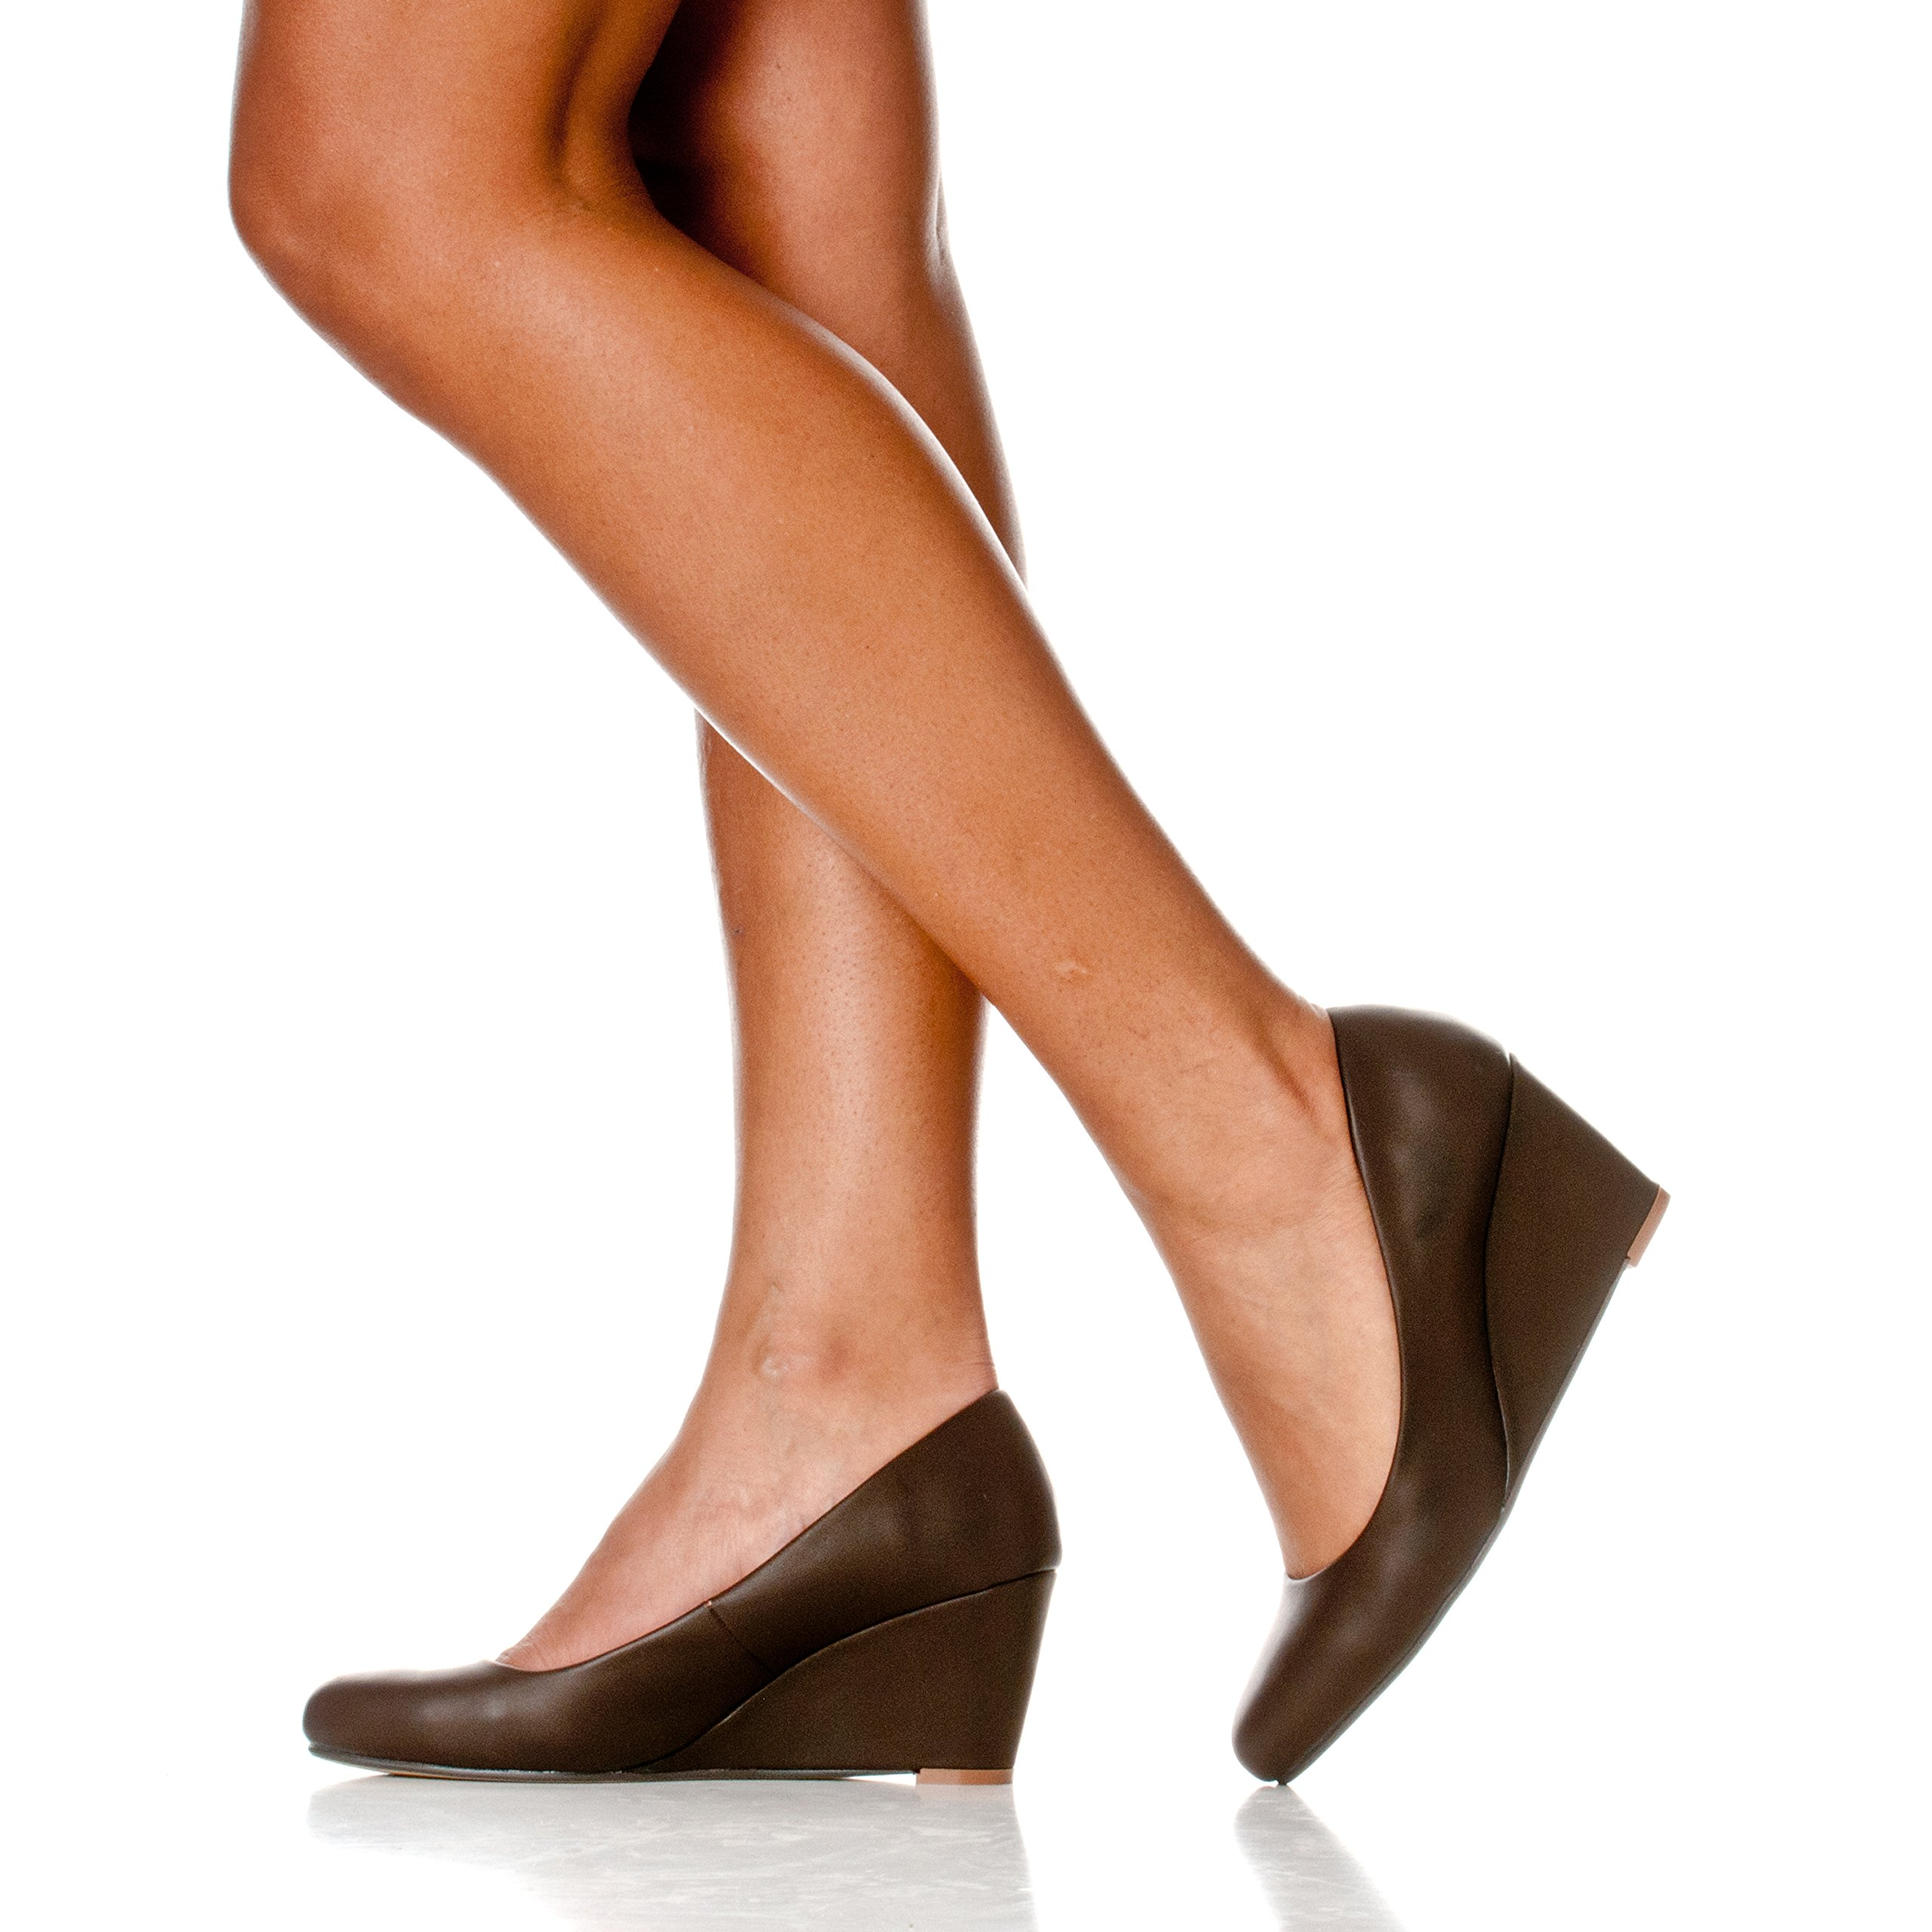 Riverberry Women's Leah Mid Heel Round Toe Wedge Pumps, Coffee PU, 9 by Riverberry (Image #6)